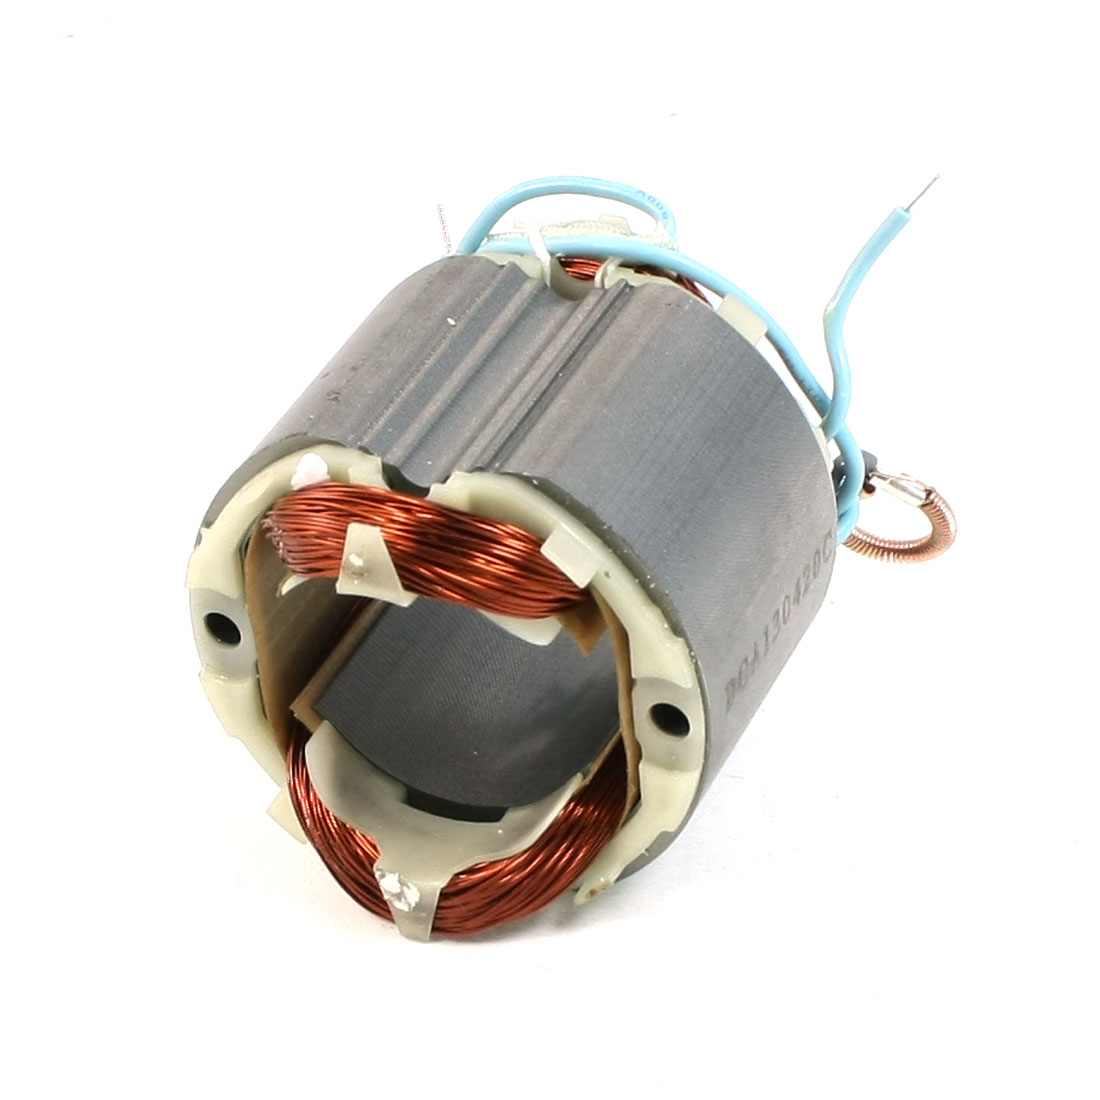 Copper 42mm Rotor Core Motor Stator AC 220V for Hitachi SAT-180 Electric Hammer